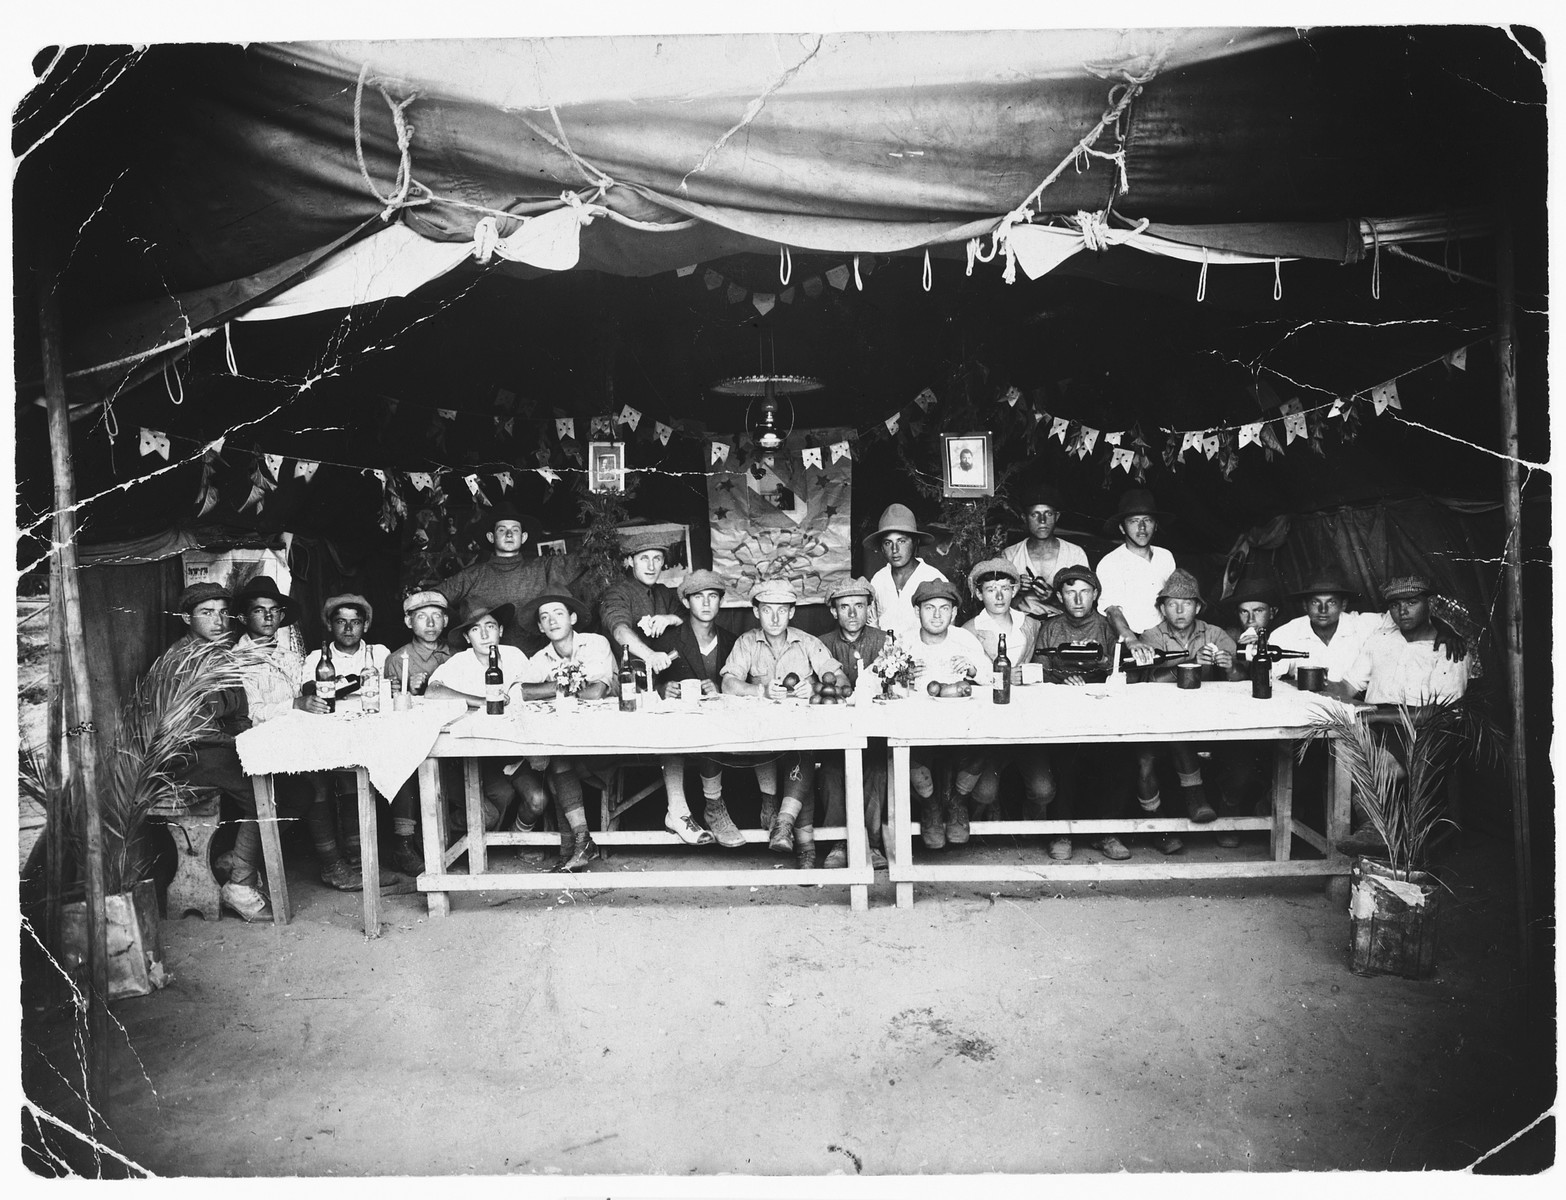 Group portrait of Jewish pioneers in a tent decorated with Zionist emblems in Palestine.  Among those pictured is Mendel Abramowicz.